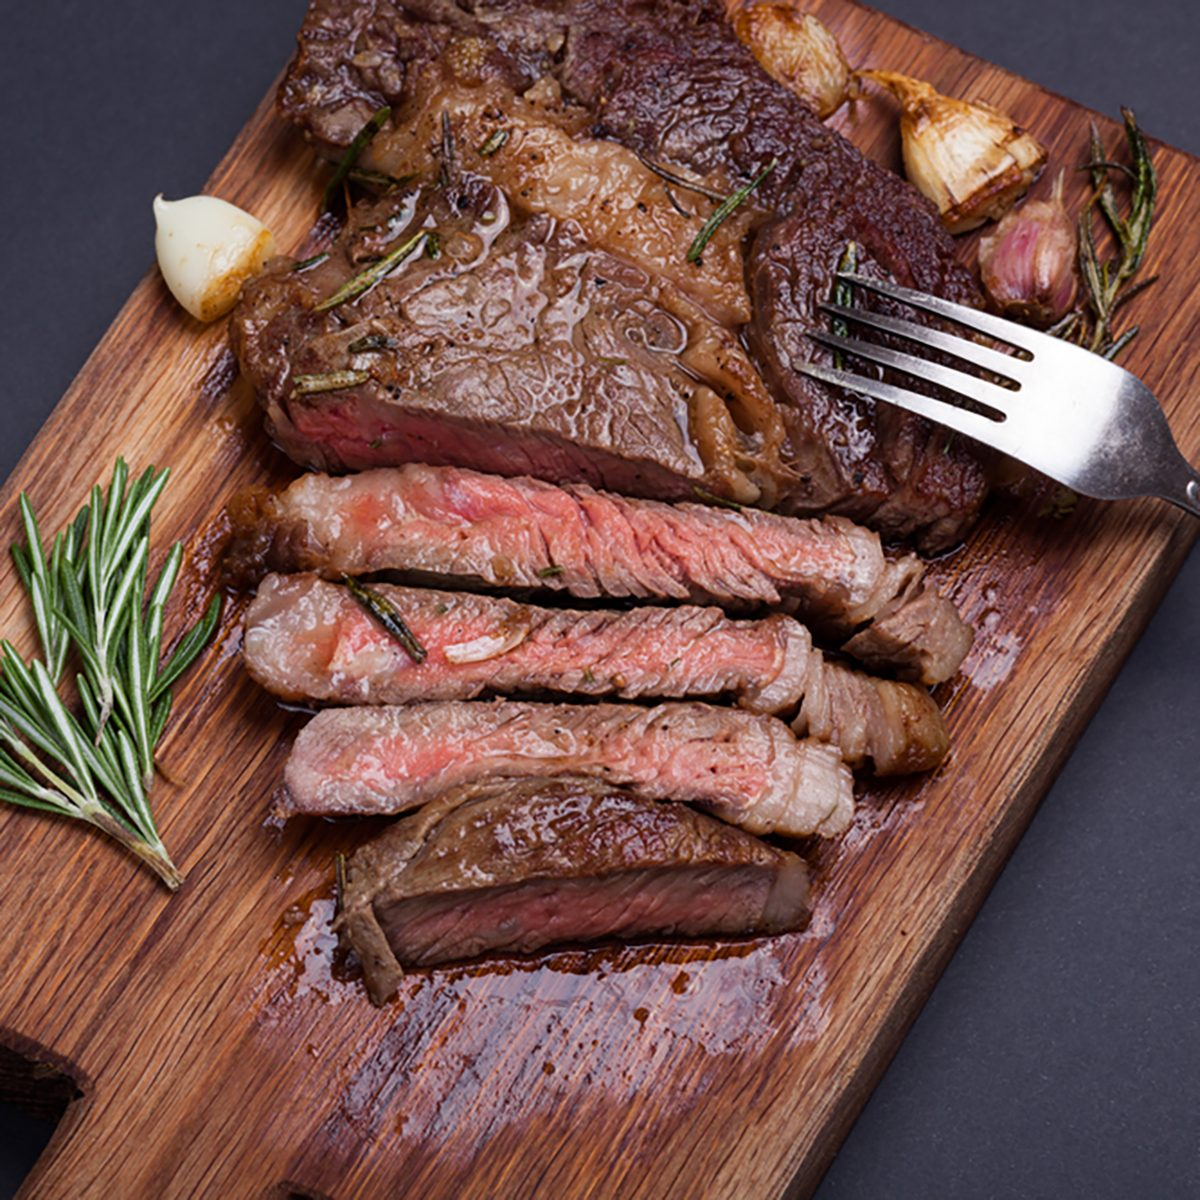 Grilled ribeye steak of marble beef closeup with spices on a wooden Board. Juicy steak medium sliced and ready to eat.